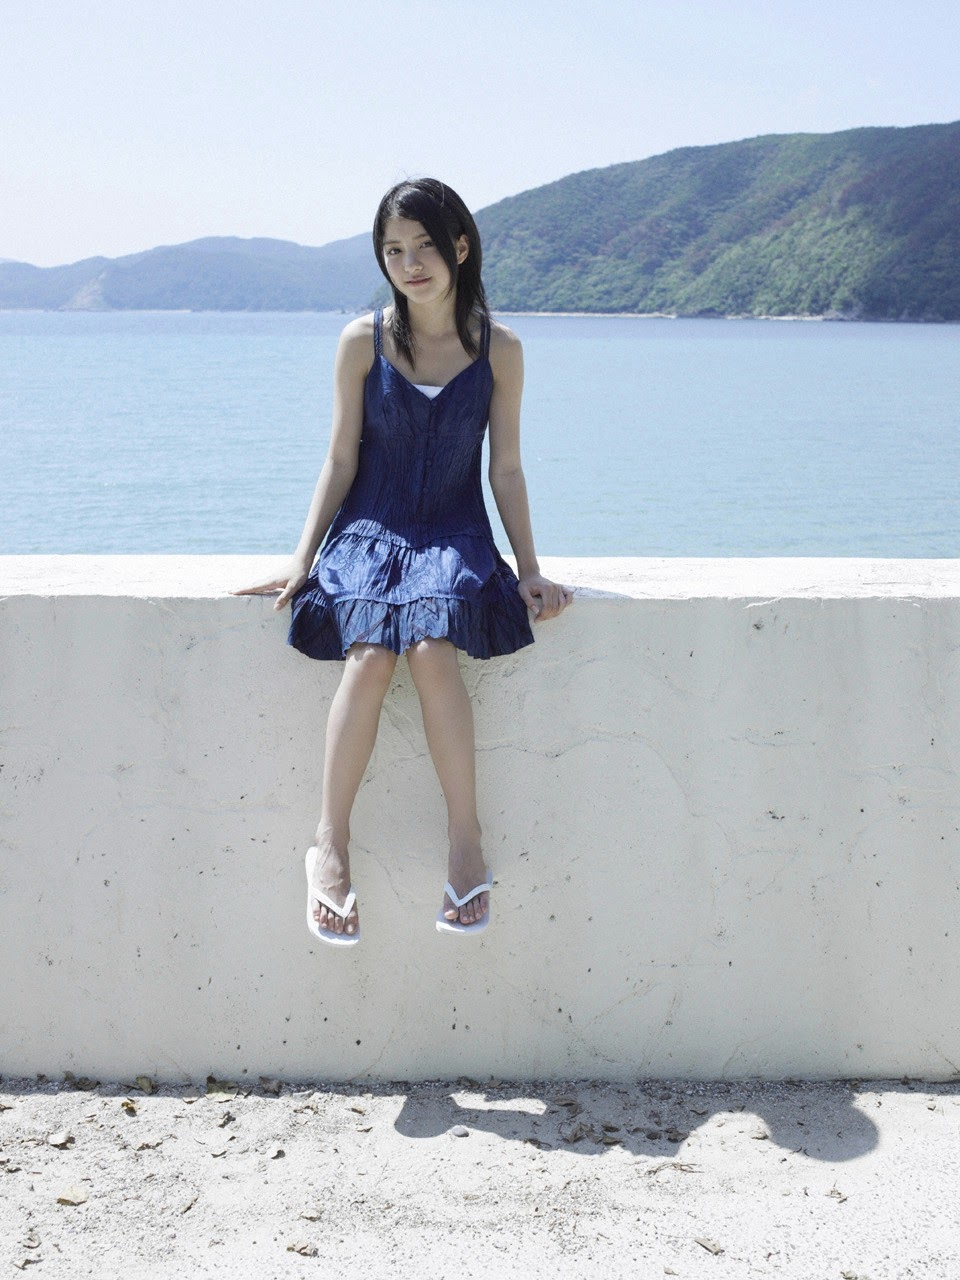 Umi chans smile explodes on some southern island161